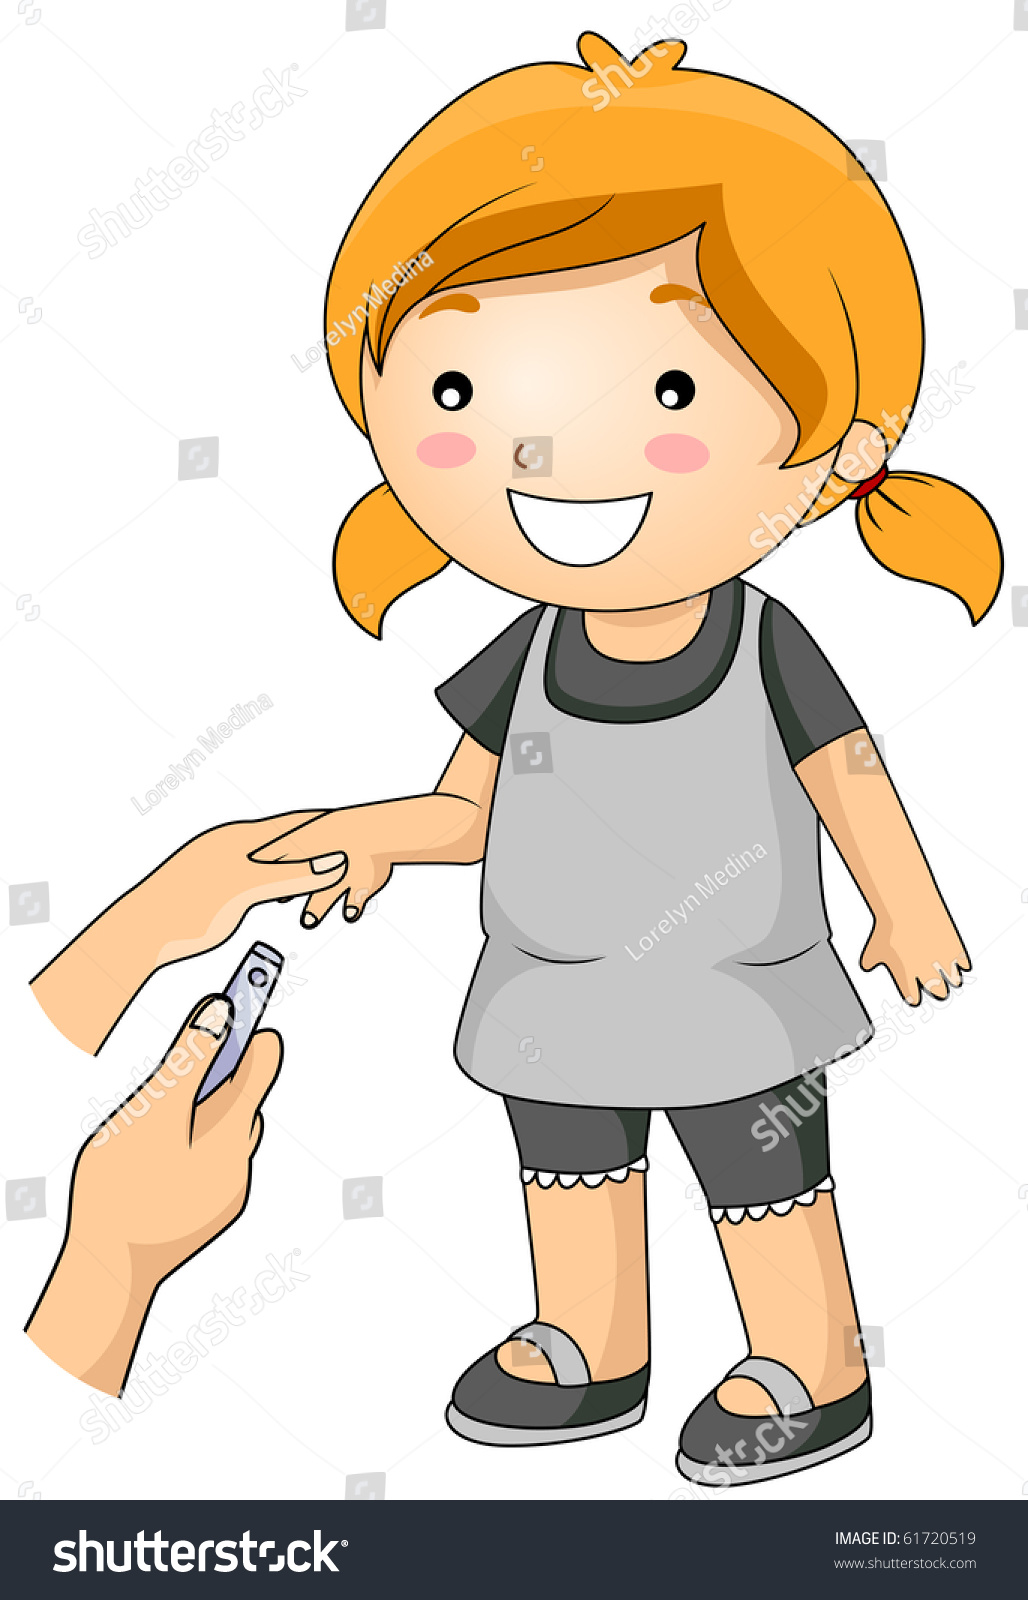 Cutting Nails PNG Transparent Cutting Nails PNG Images  | PlusPNG